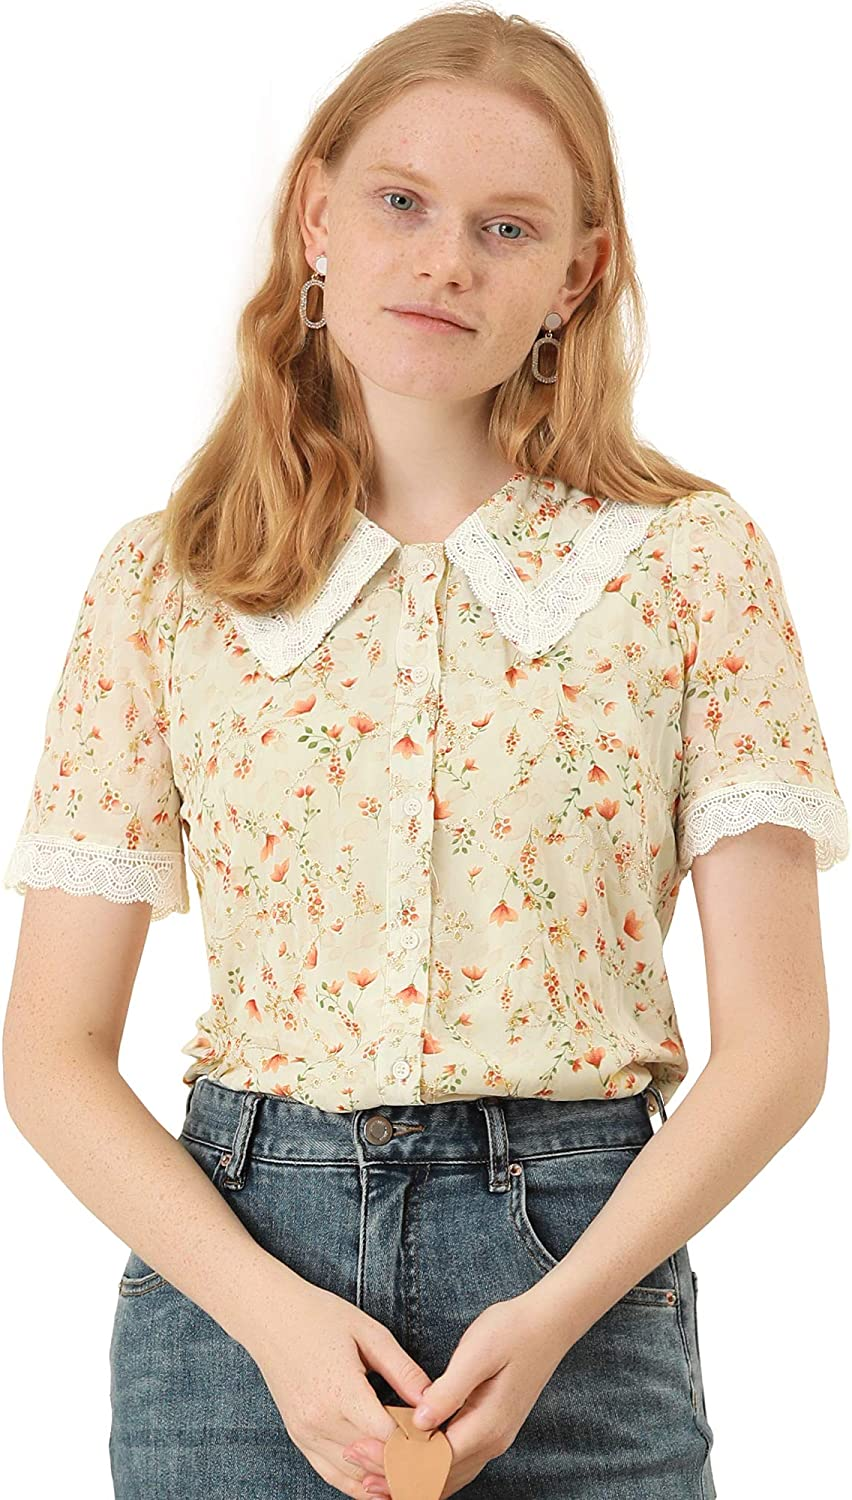 1940s Blouses, Tops, Shirts, Knitwear Allegra K Womens Peter Pan Collar Shirt Lace Embroidered 1940s Vintage Peasant Floral Blouse  AT vintagedancer.com